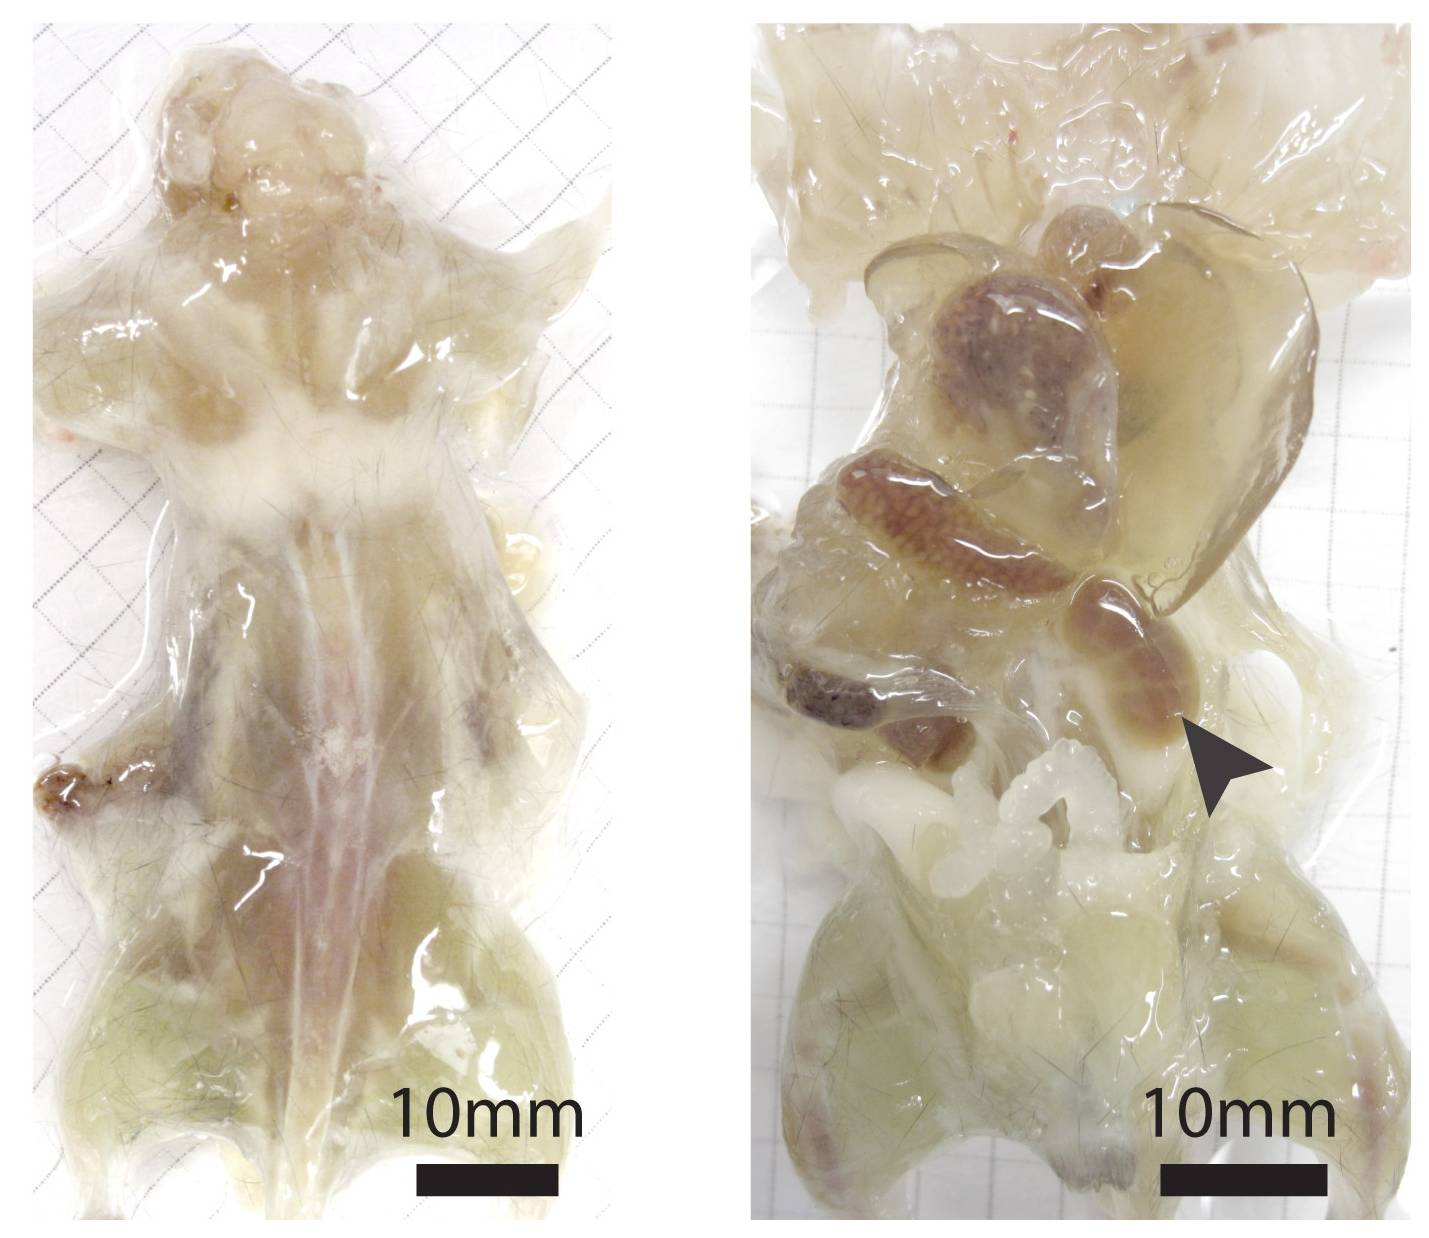 This undated photo combo provided by the journal Cell and taken with a bright field camera, shows a mouse with its skin removed during various stages of examination. Researchers have found a way to make see-through mice and rats, a step that should help them study fine details of anatomy for basic research. The left image shows the mouse with the skin removed. The right image shows the mouse after one week of the process.